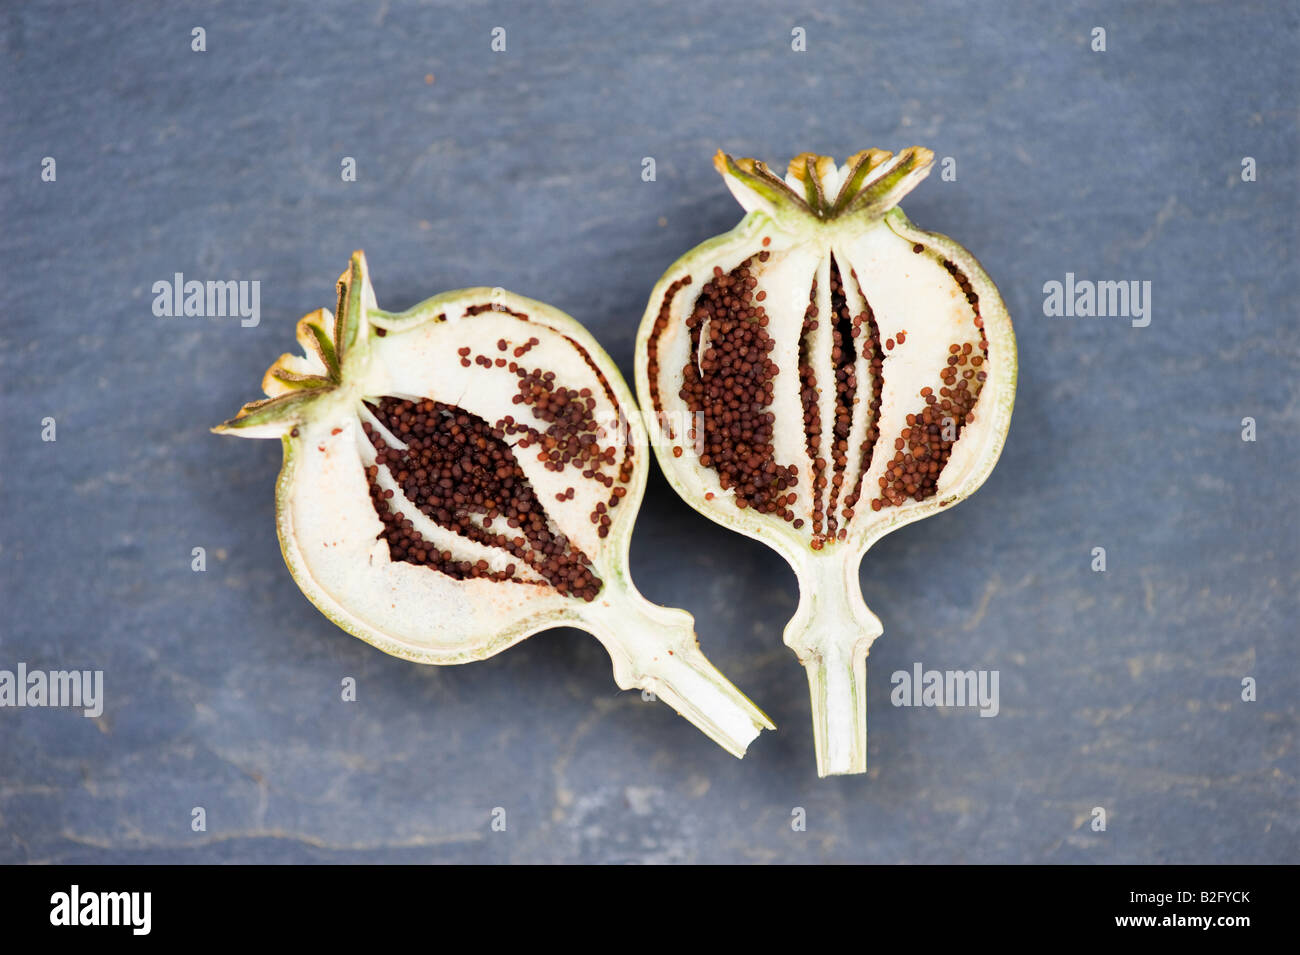 Poppy seeds in a poppy seed pod that has been split open for Garden pods to live in